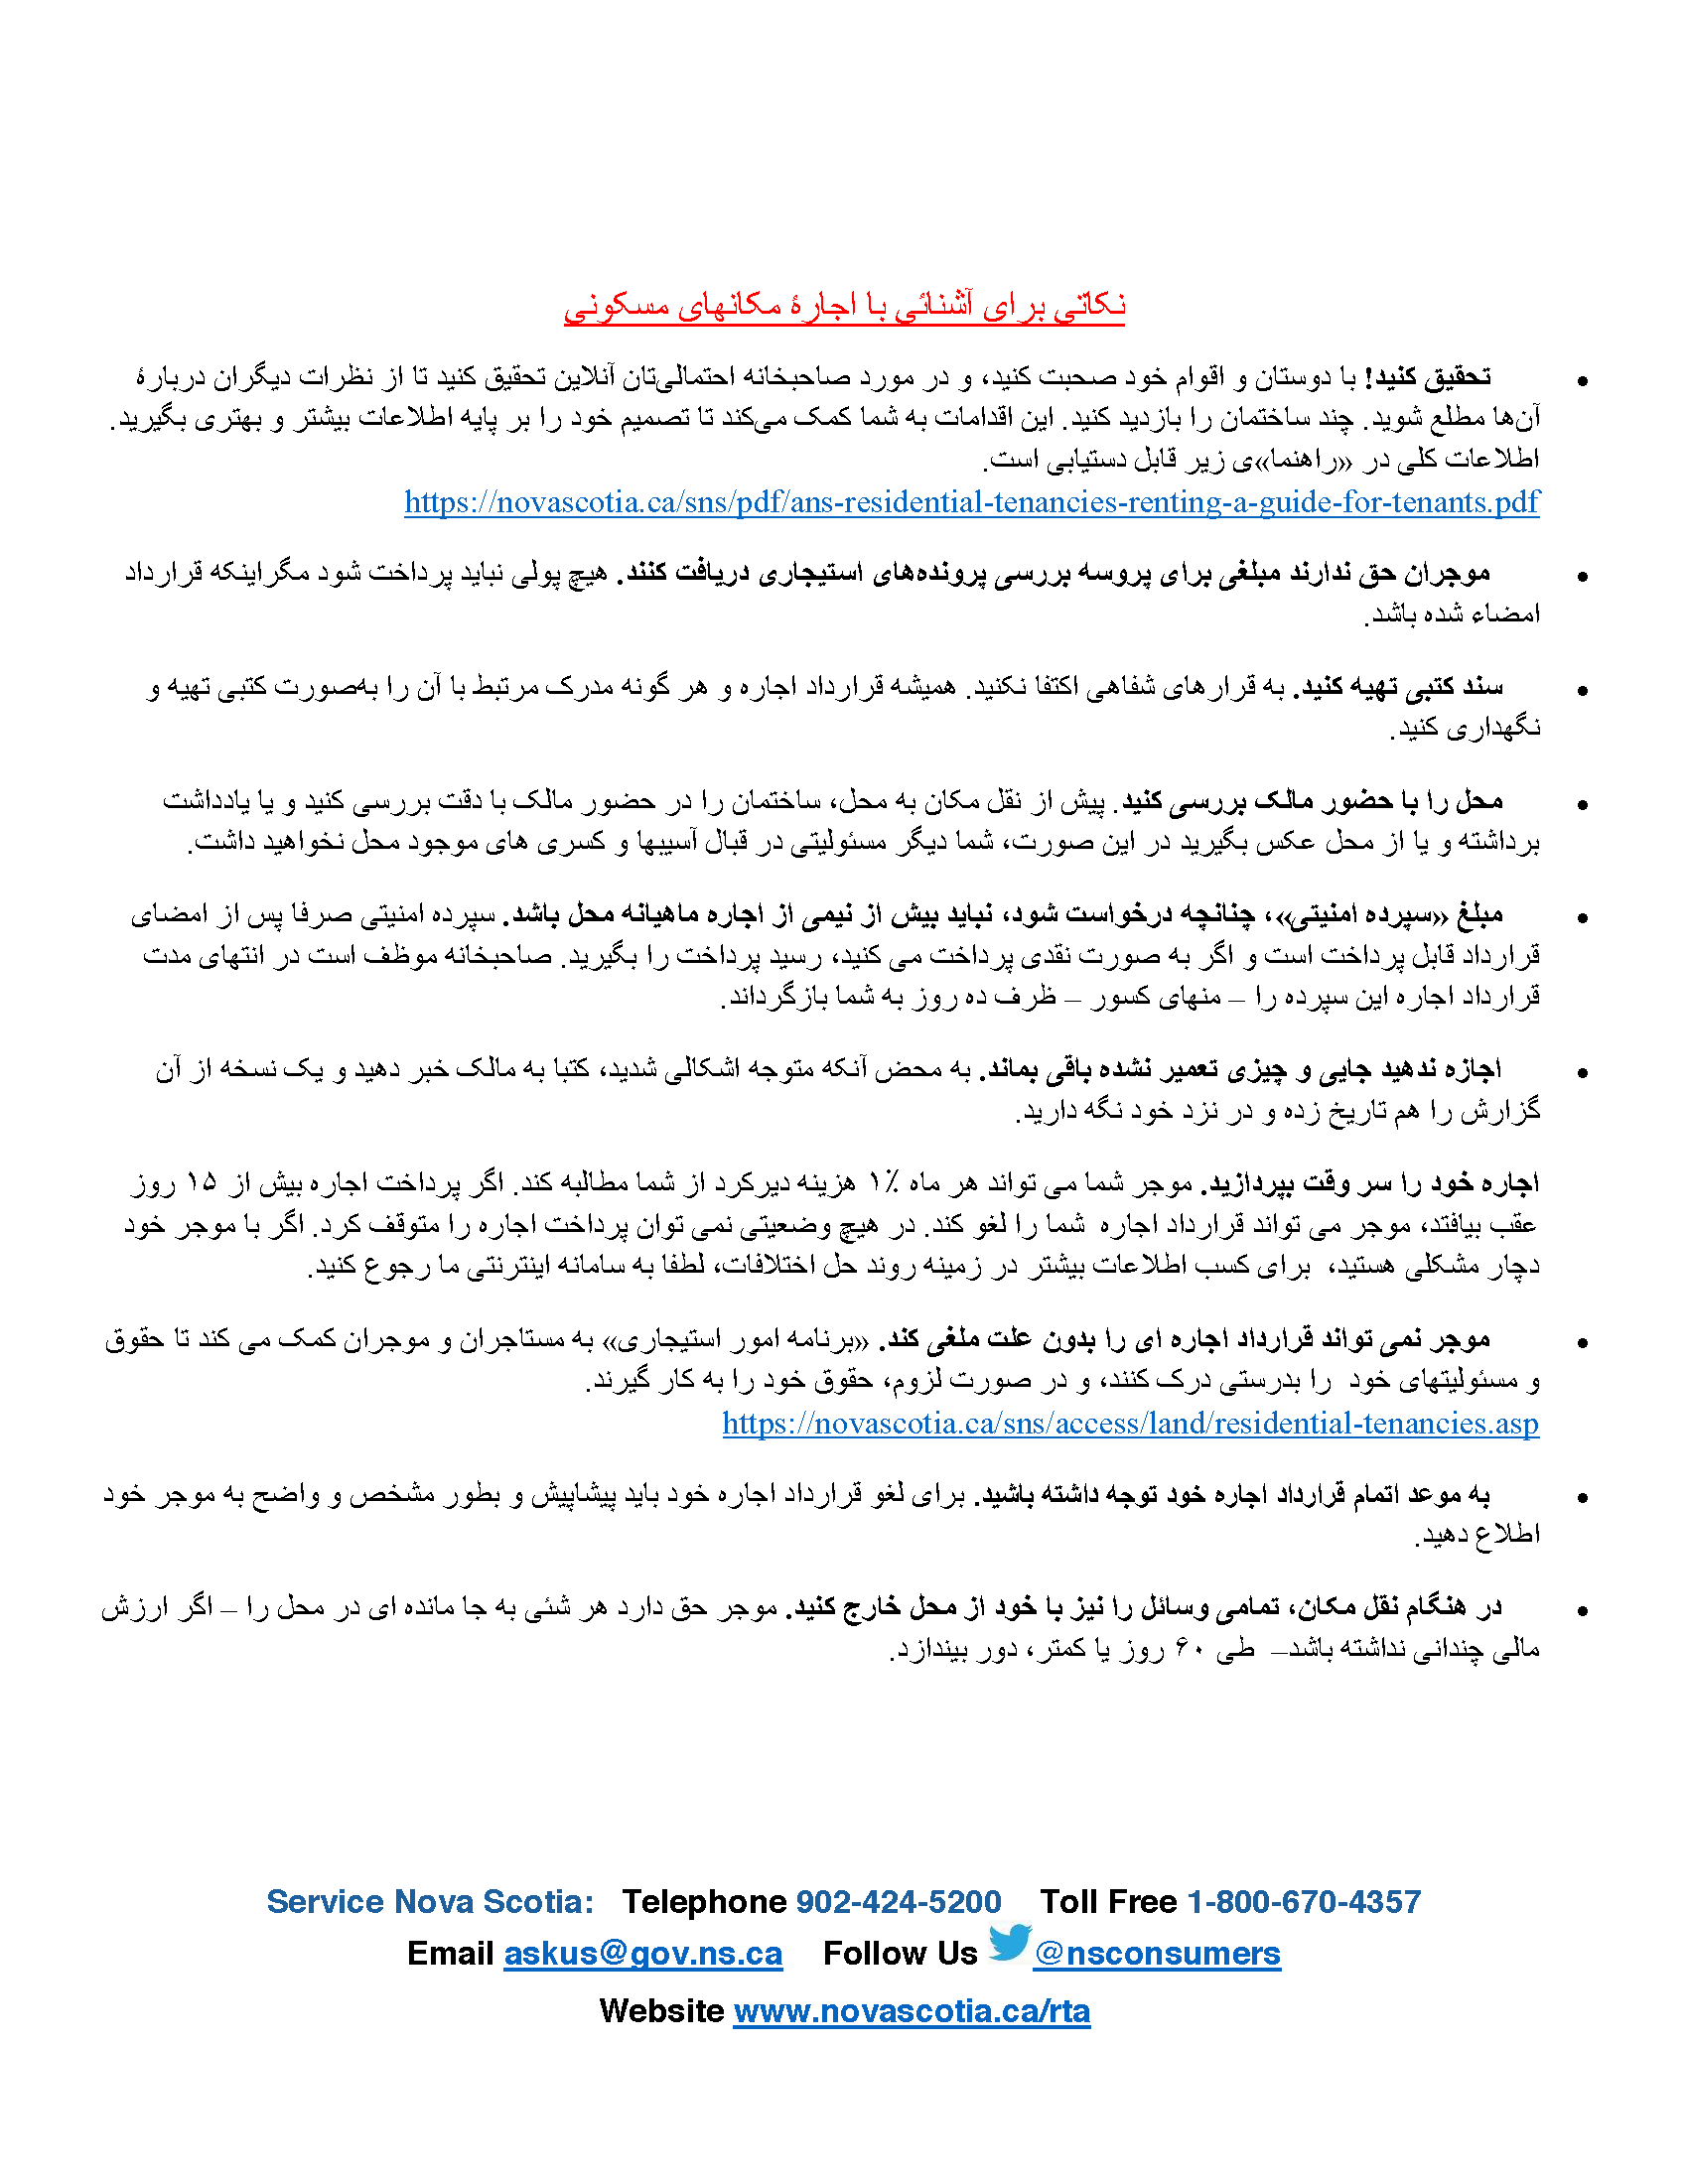 Residential tenancies government of nova scotia service nova offers landlord and tenant tip sheets in arabic farsi aiddatafo Gallery